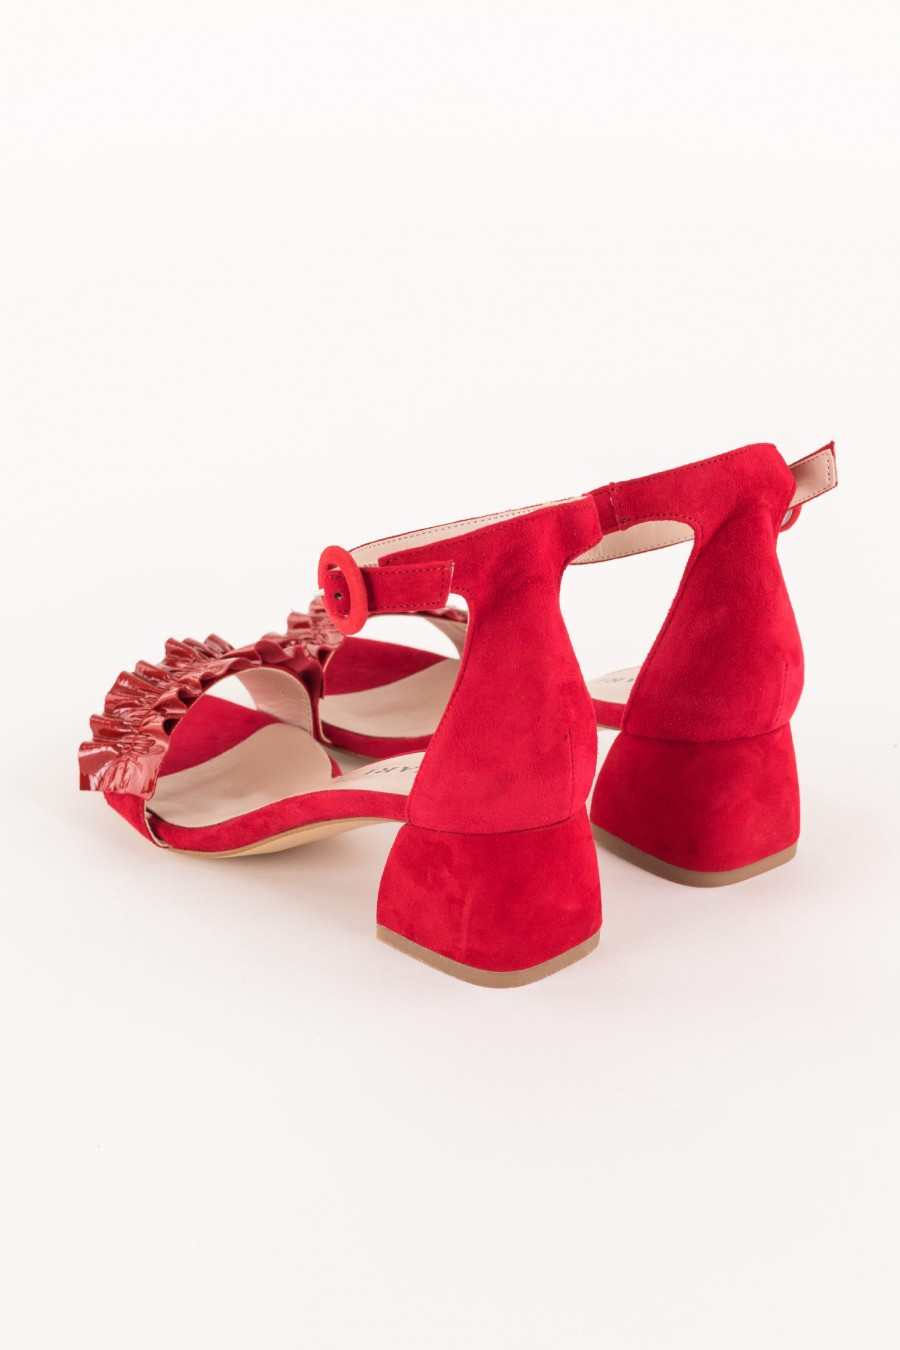 red sandal with ruffle on the strap